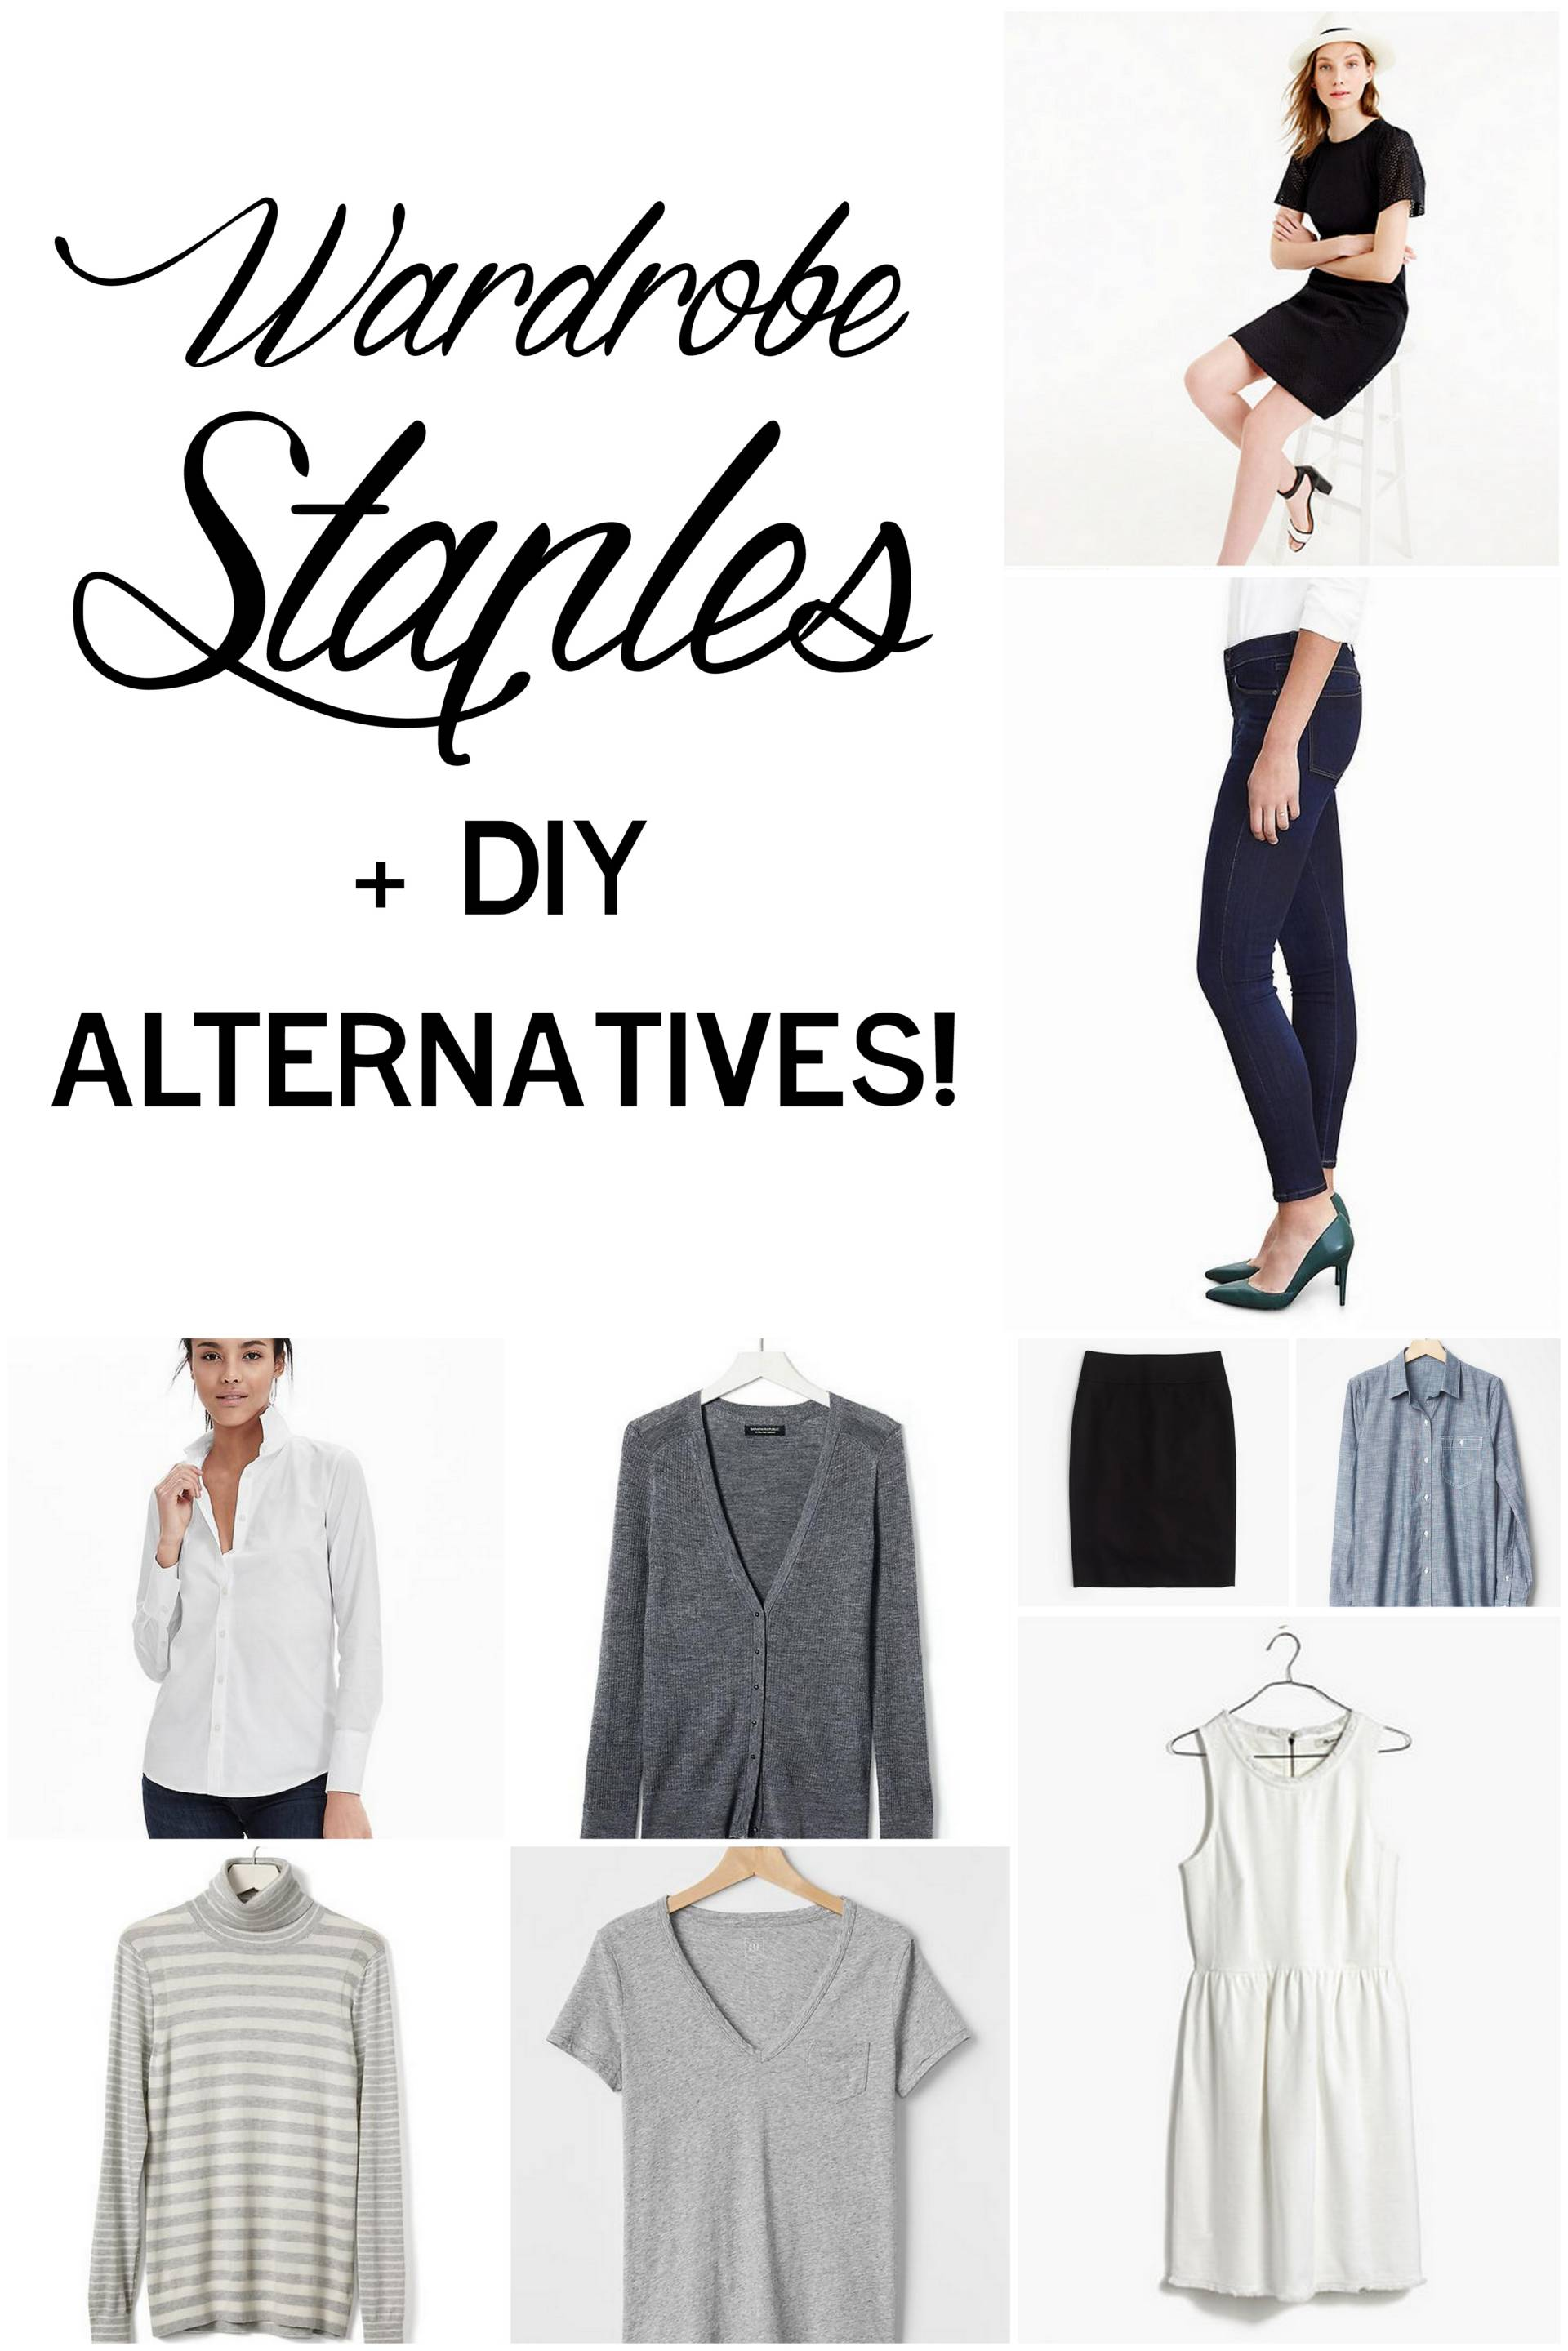 expanding your closet with handmade wardrobe staples